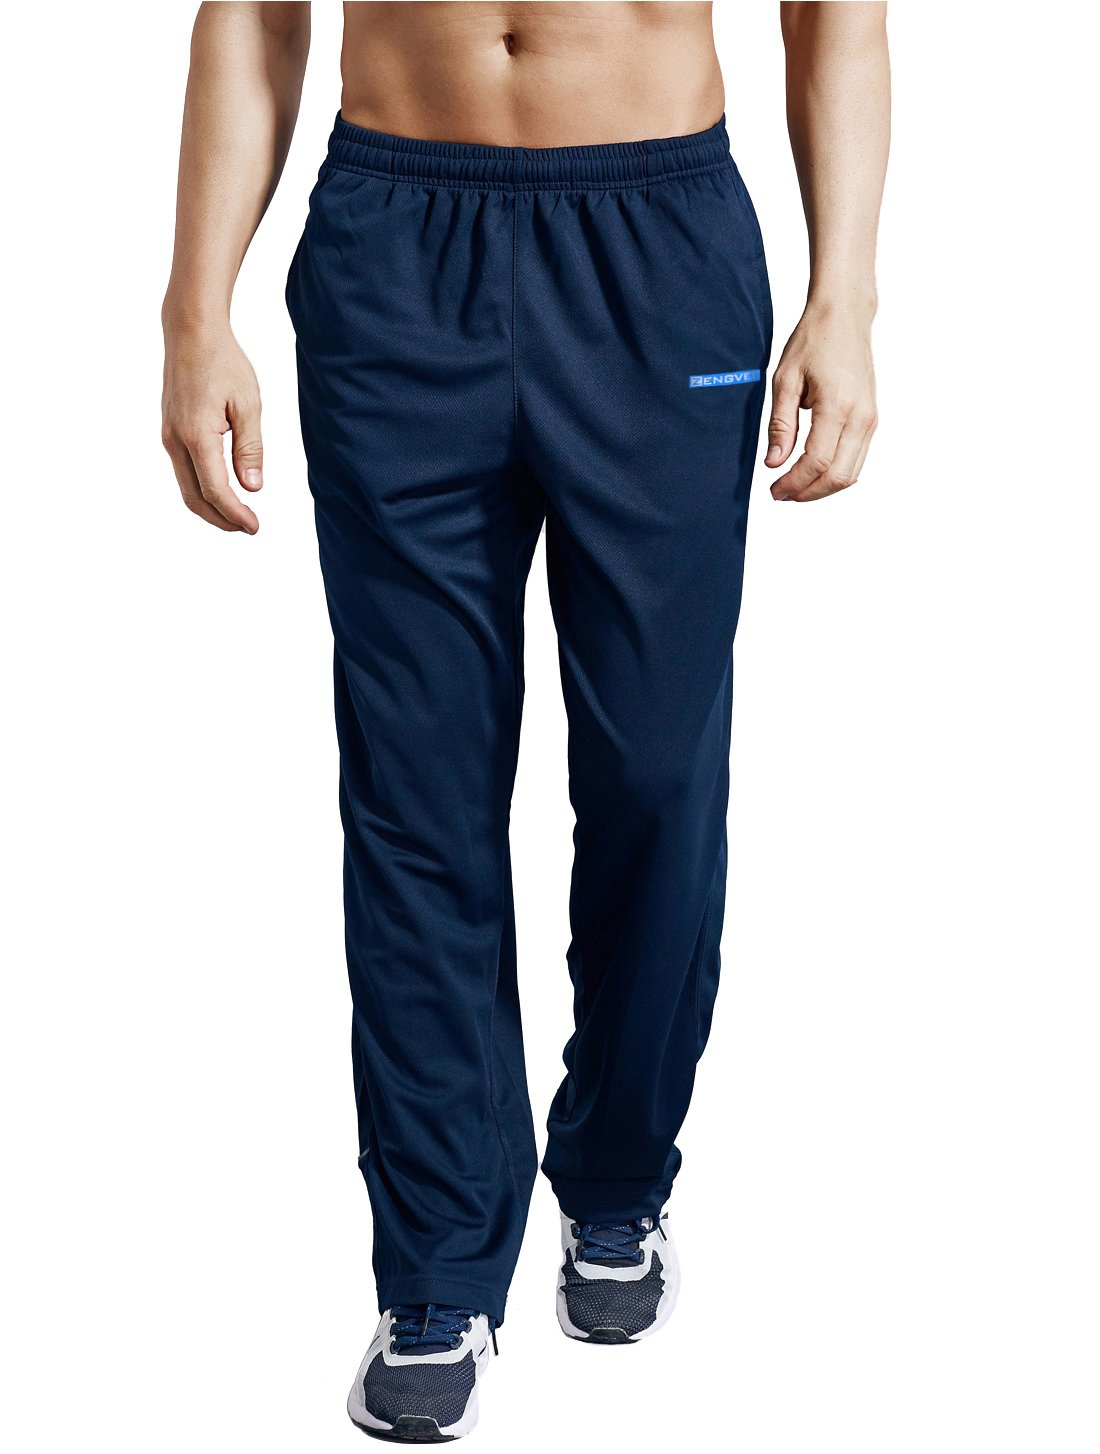 ZENGVEE Men's Sweatpant with Pockets Open Bottom Athletic Pants for Jogging, Workout, Gym, Running, Training(0317-Navy Blue,S)